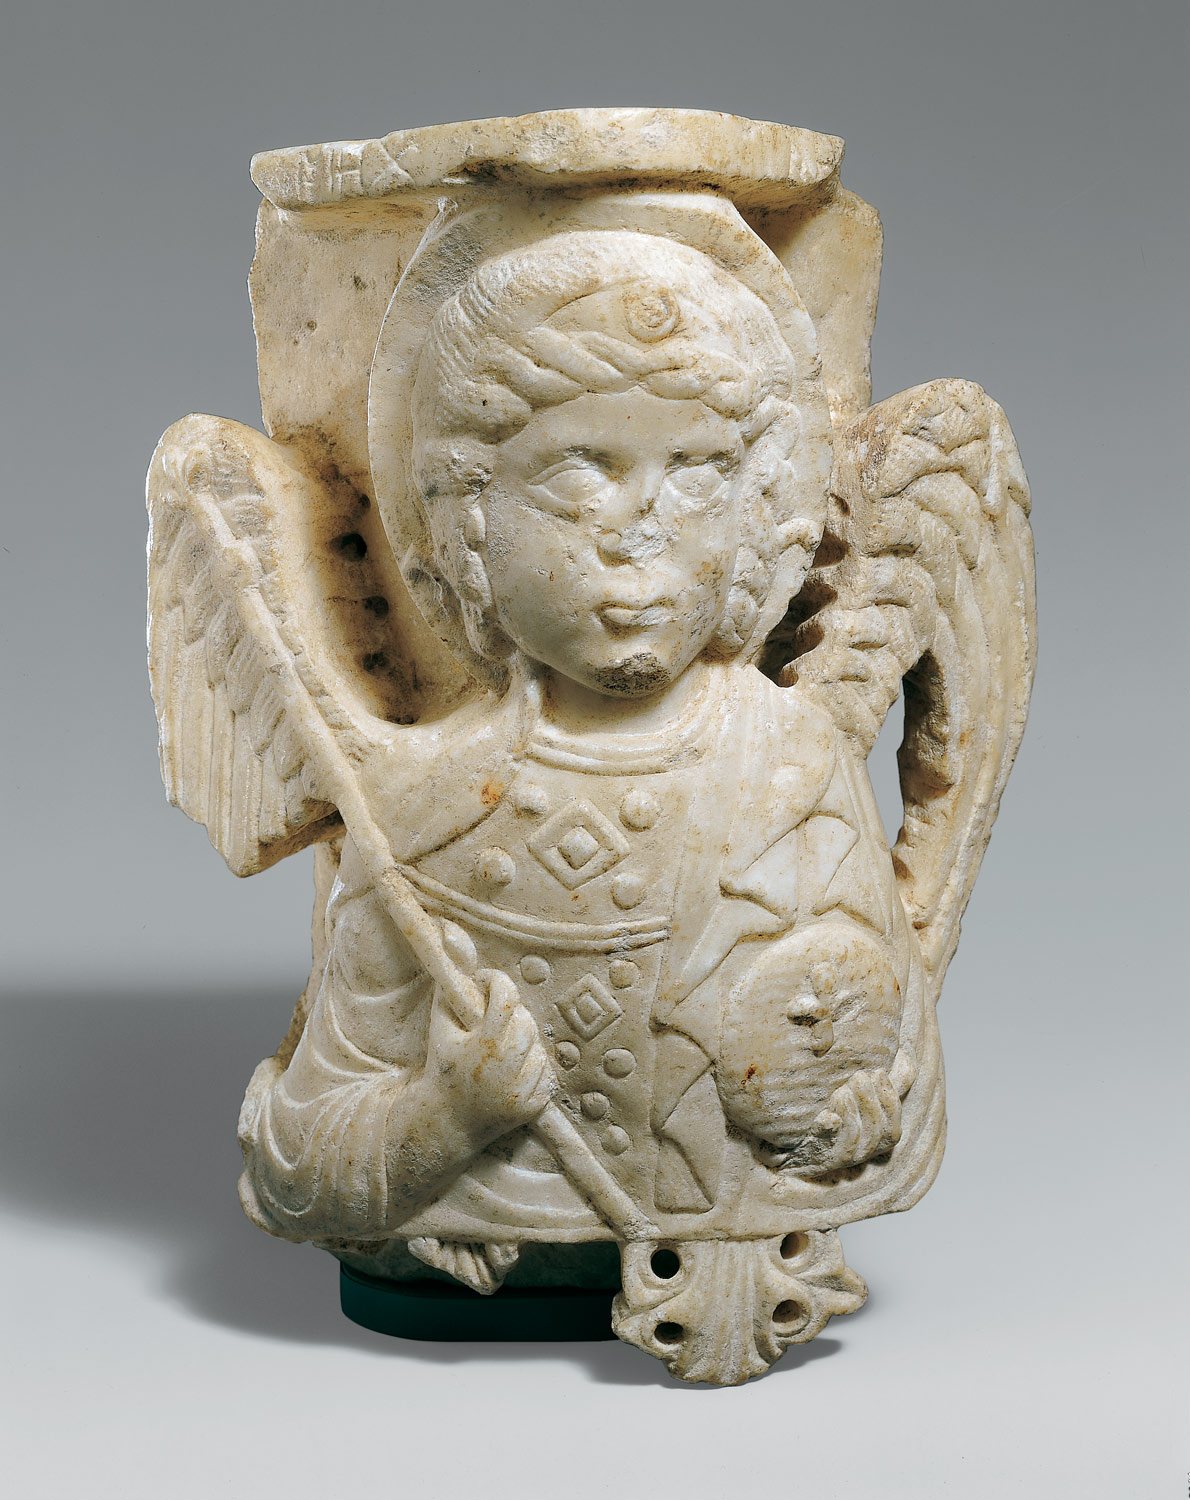 Capital with Bust of the Archangel Michael